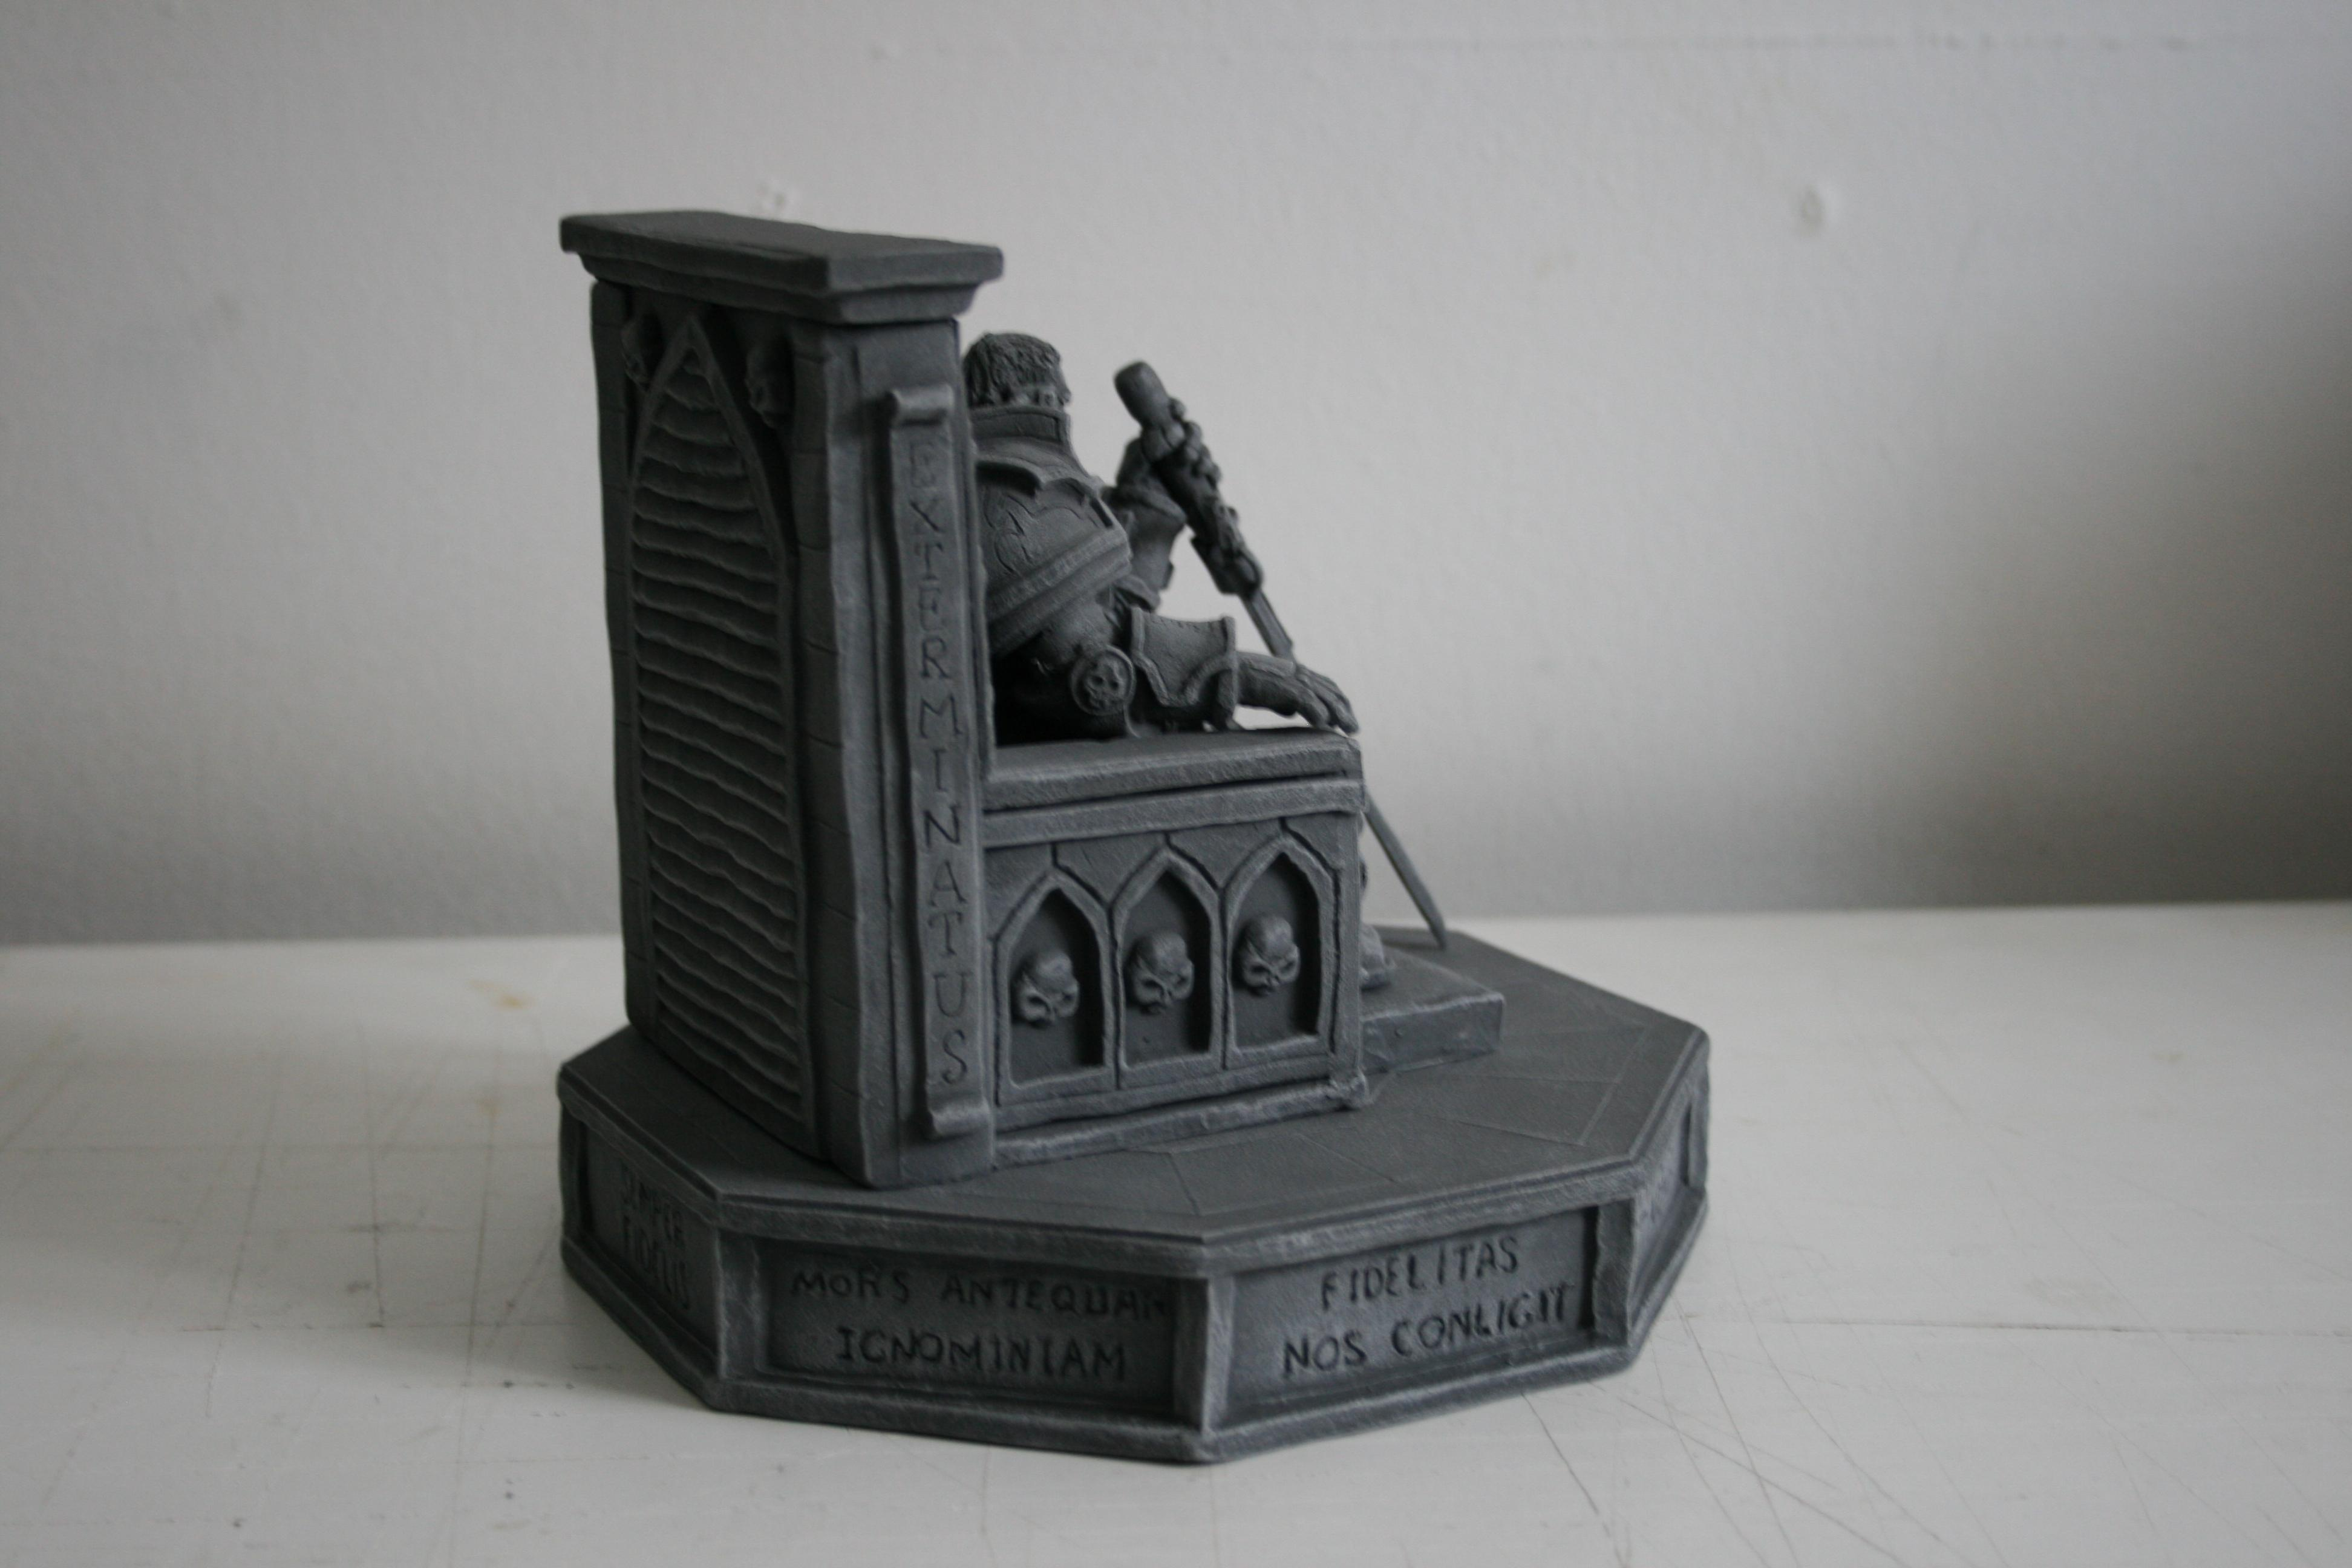 40k Inquisitor, Chaos, Chaos Lord, Chaos Space Marines, Imperial, Imperium, Inquisition, Inquisitor, Inquisitor Lord, Lord Inquisitor, Monument, Scatch Build, Scratch Build, Sculpting, Sculpture, Space Marines, Statue, Statues, Terrain, Warhammer 40,000, Warhammer Fantasy